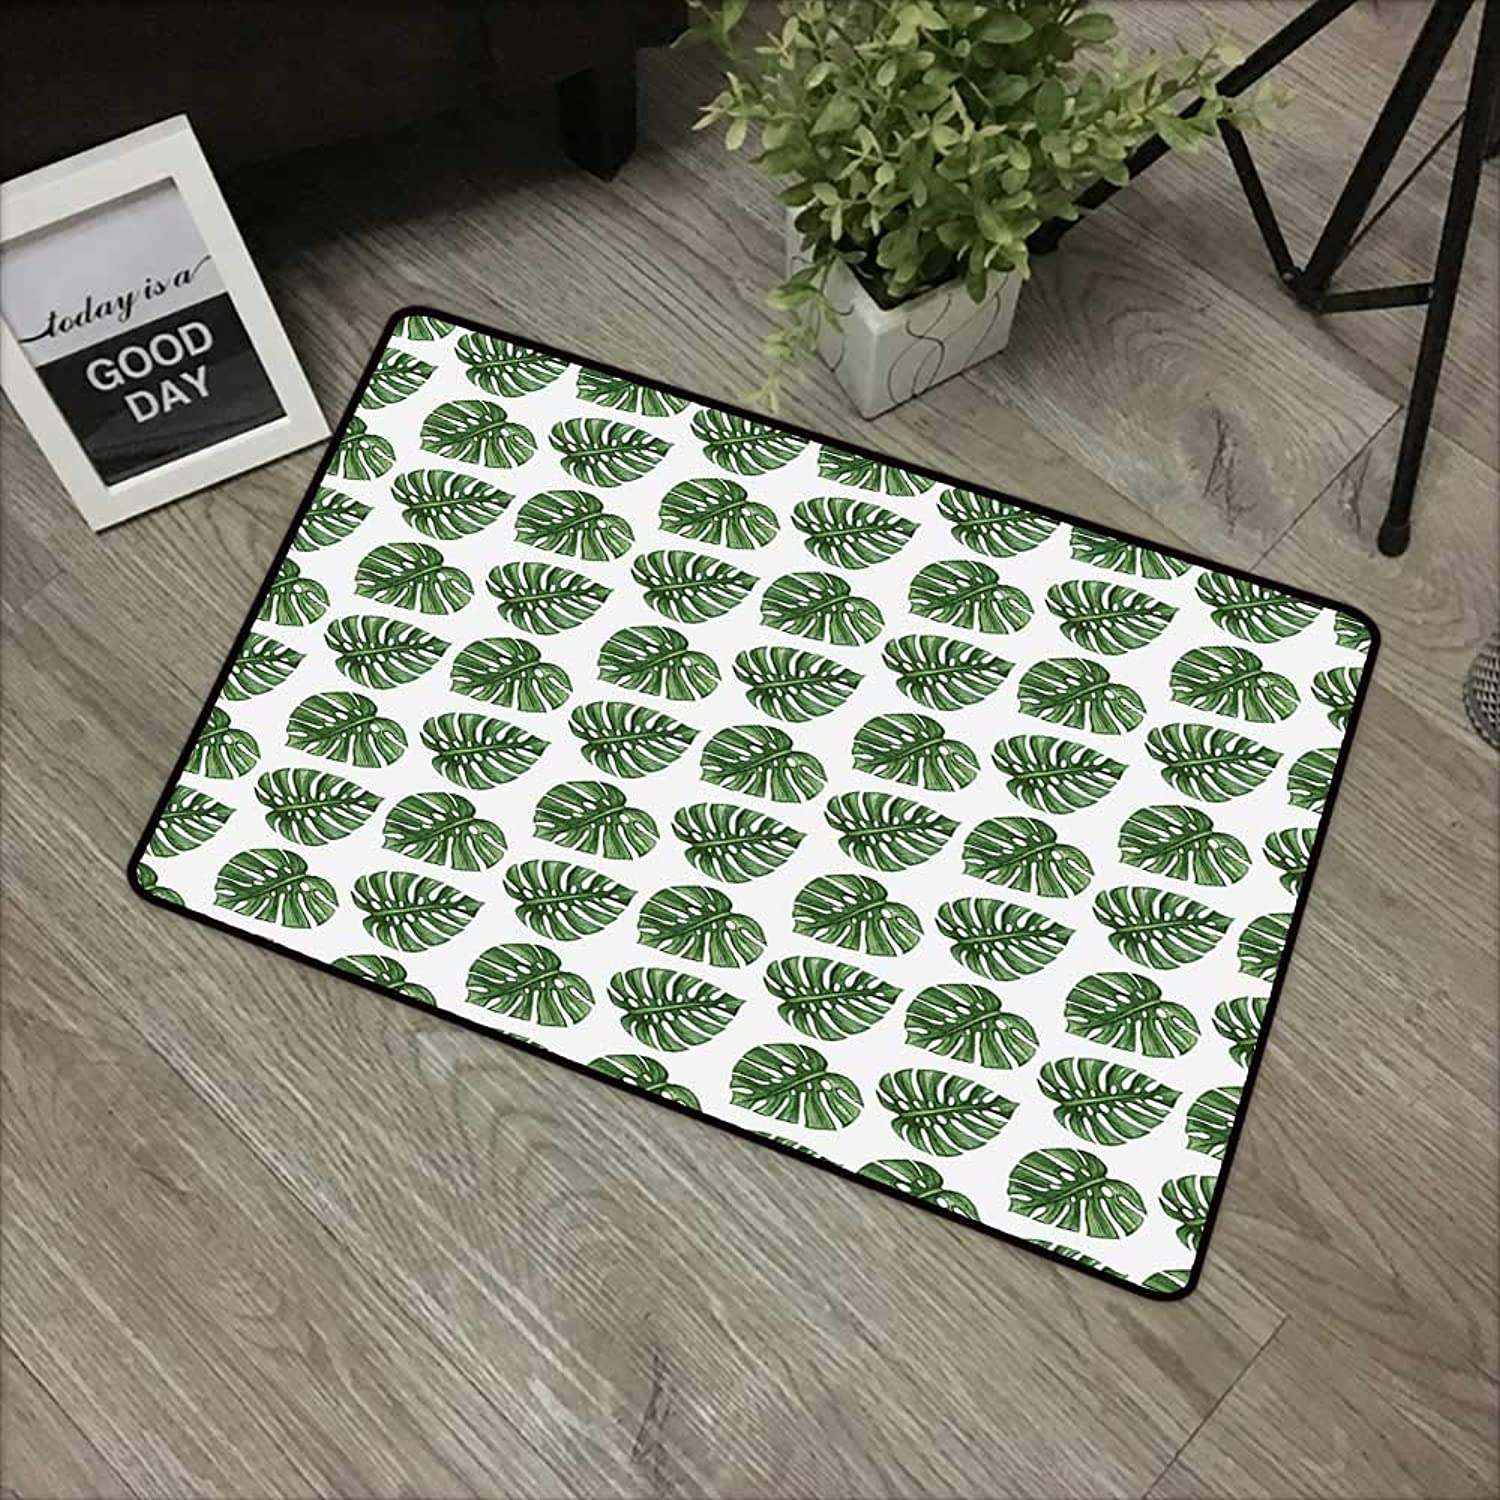 Bedroom Door mat W35 x L59 INCH Green Leaf,Tropical Jungle Leaves Palm Trees of Hawaii Watercolor Style Summer Nature,Green White Non-Slip Door Mat Carpet